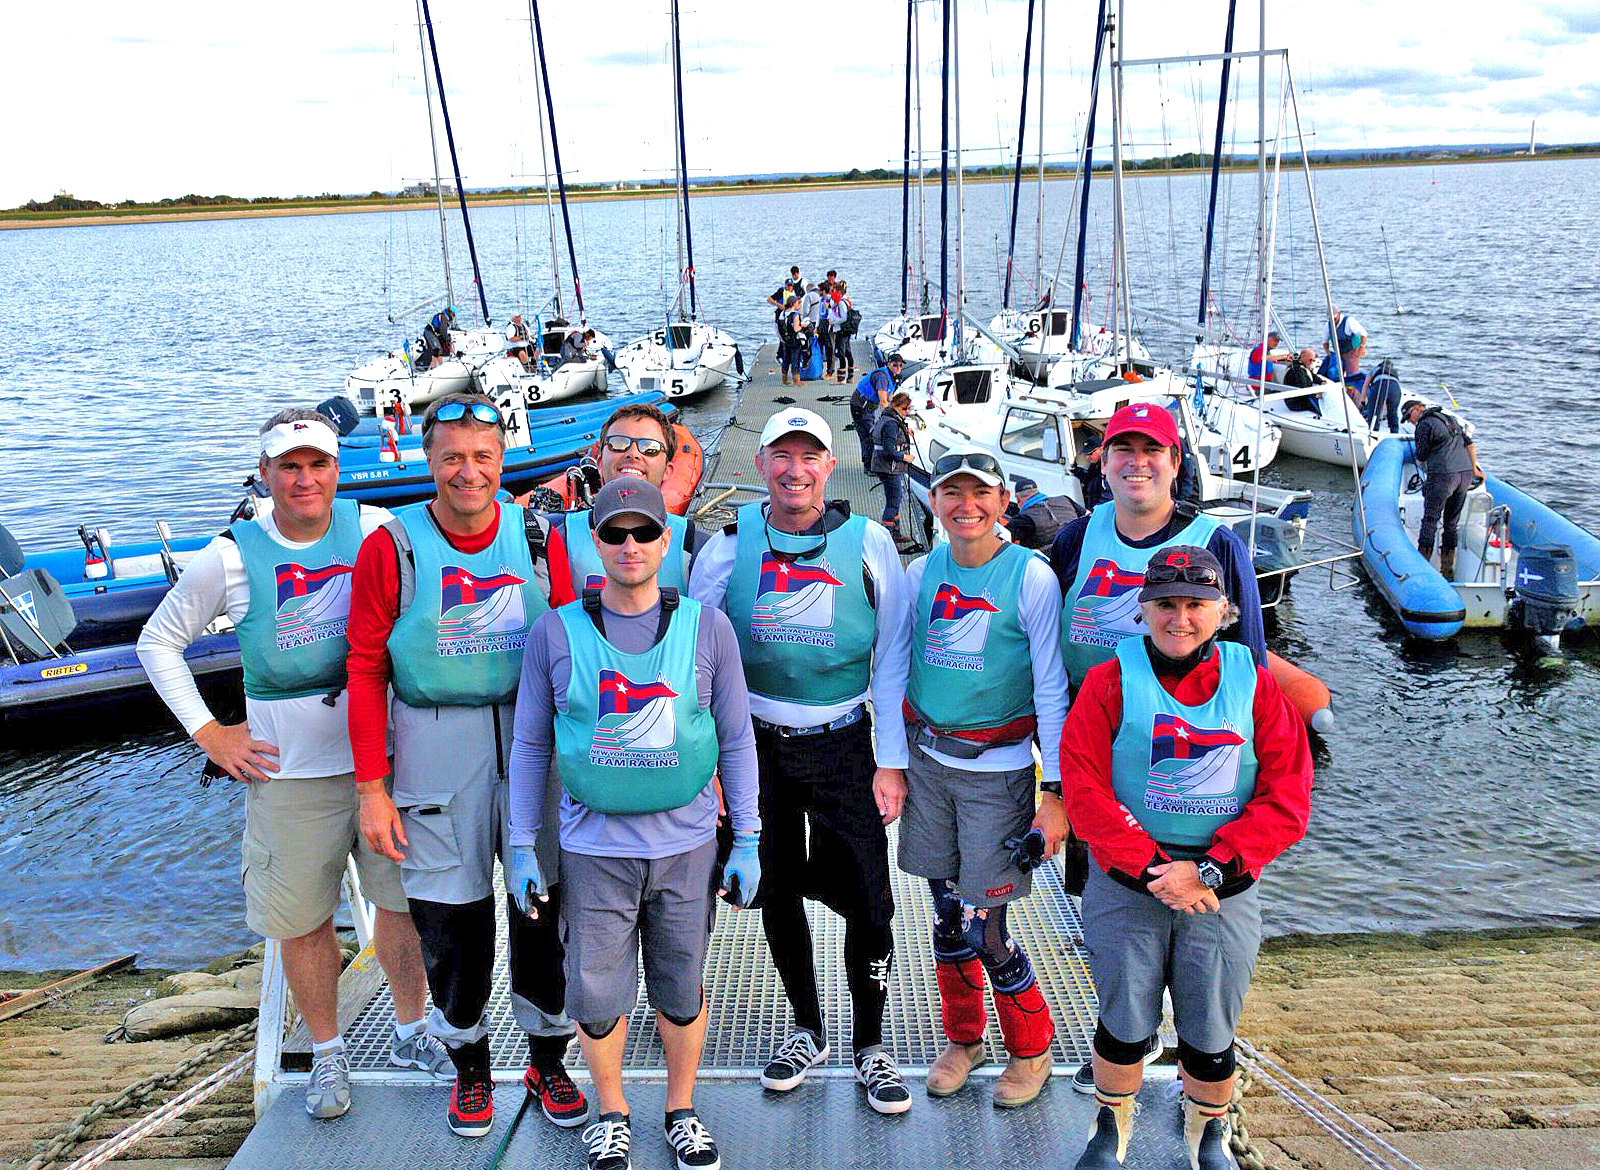 J/80 New York YC team sailors